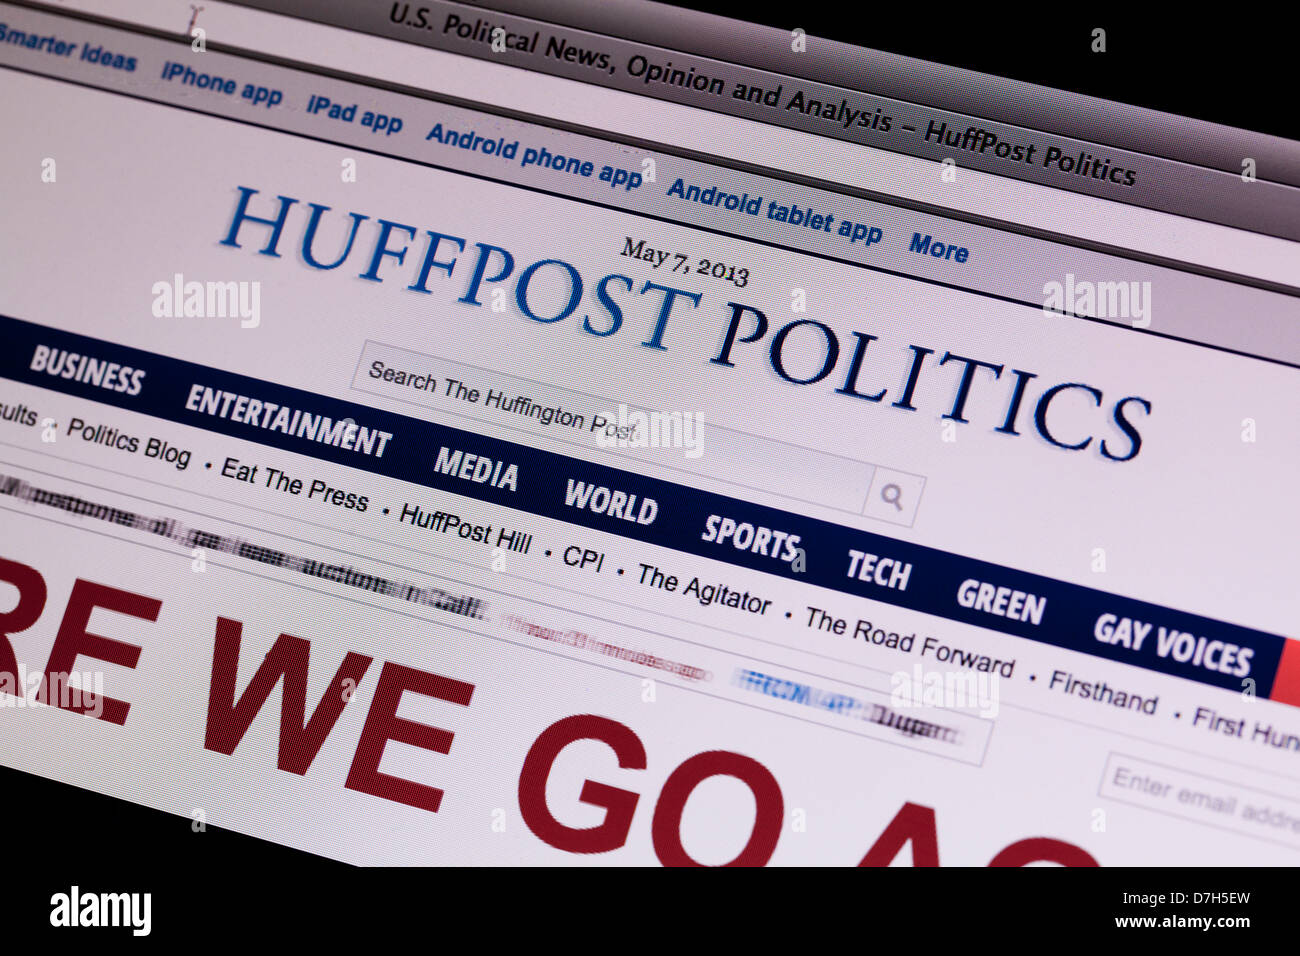 Huffington Post Politics website on screen - Stock Image